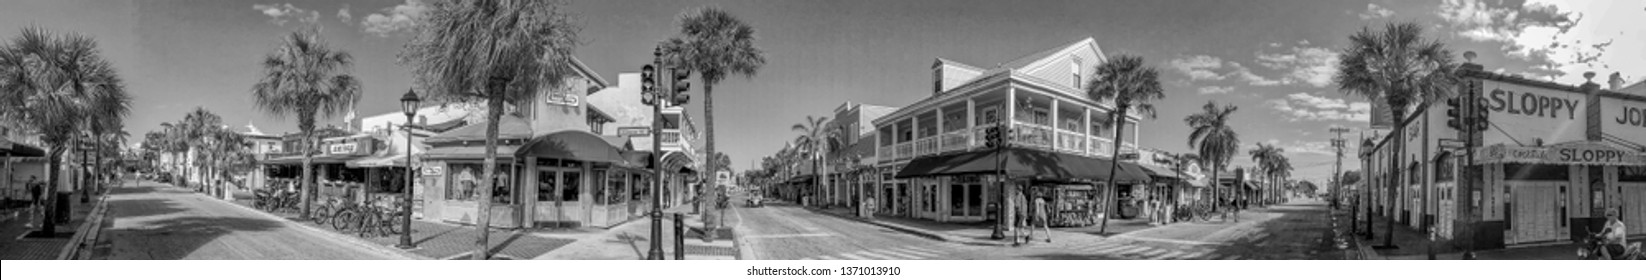 KEY WEST, FL - FEBRUARY 2016: Tourists along city streets, panoramic view. Key West is a major tourist destination in Florida.